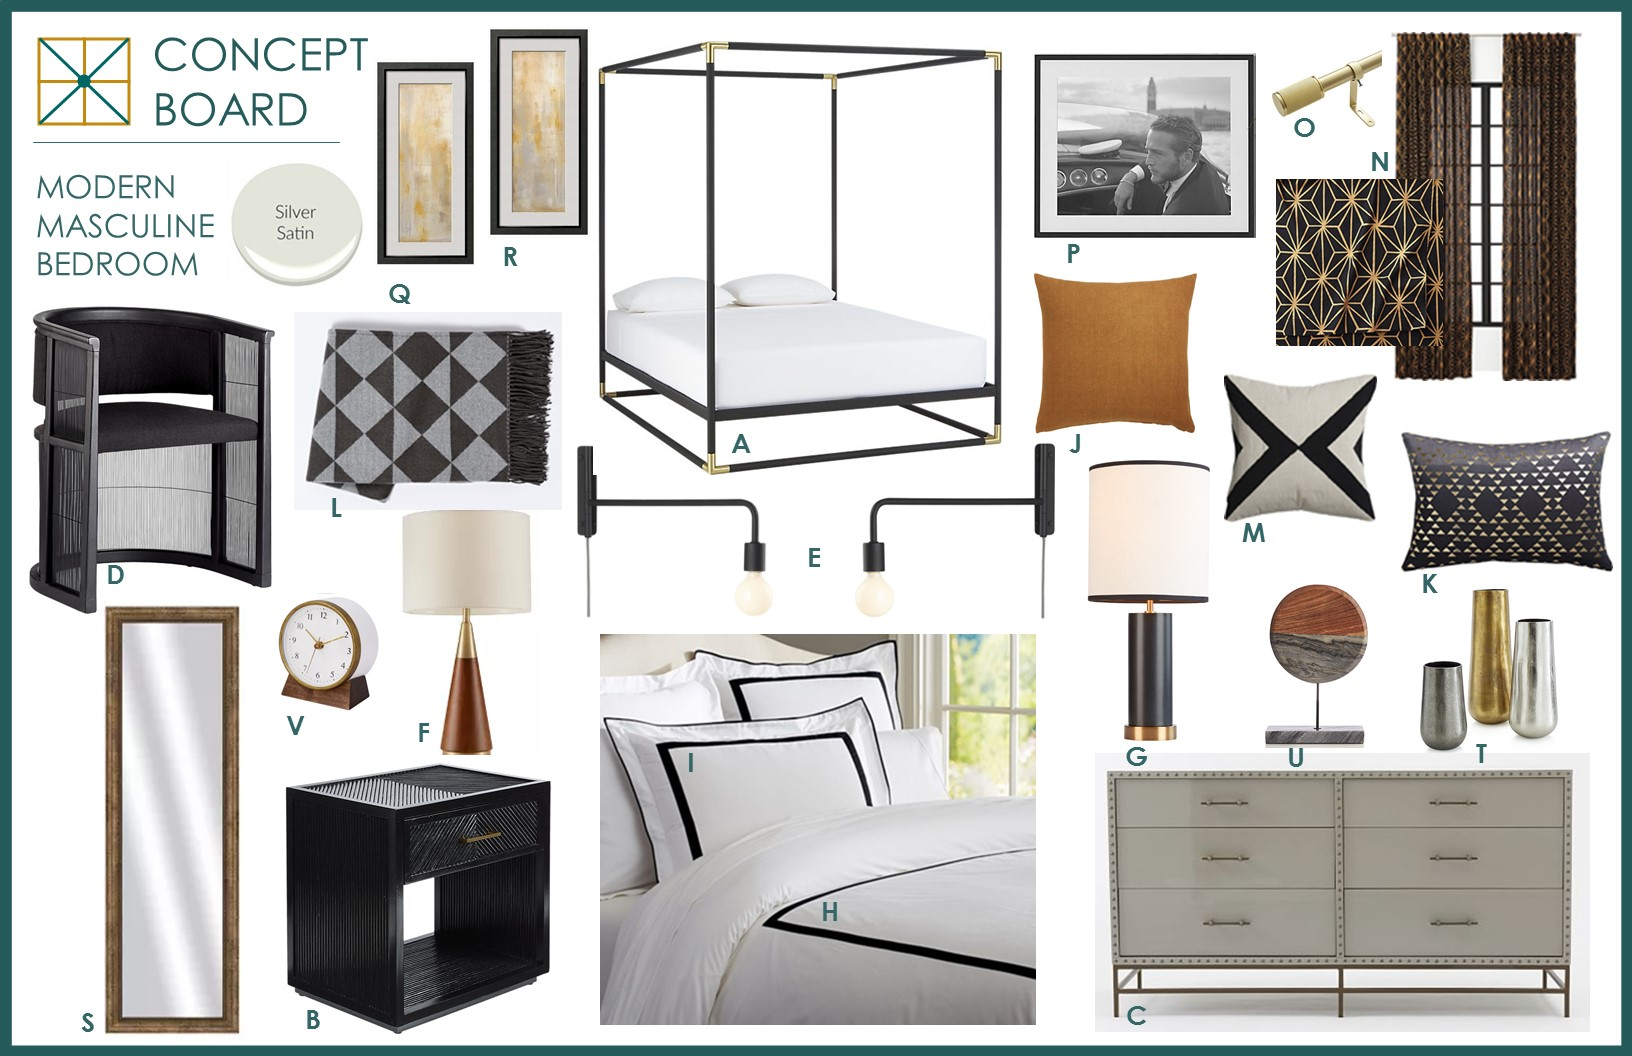 Modern Master Bedroom Concept Board